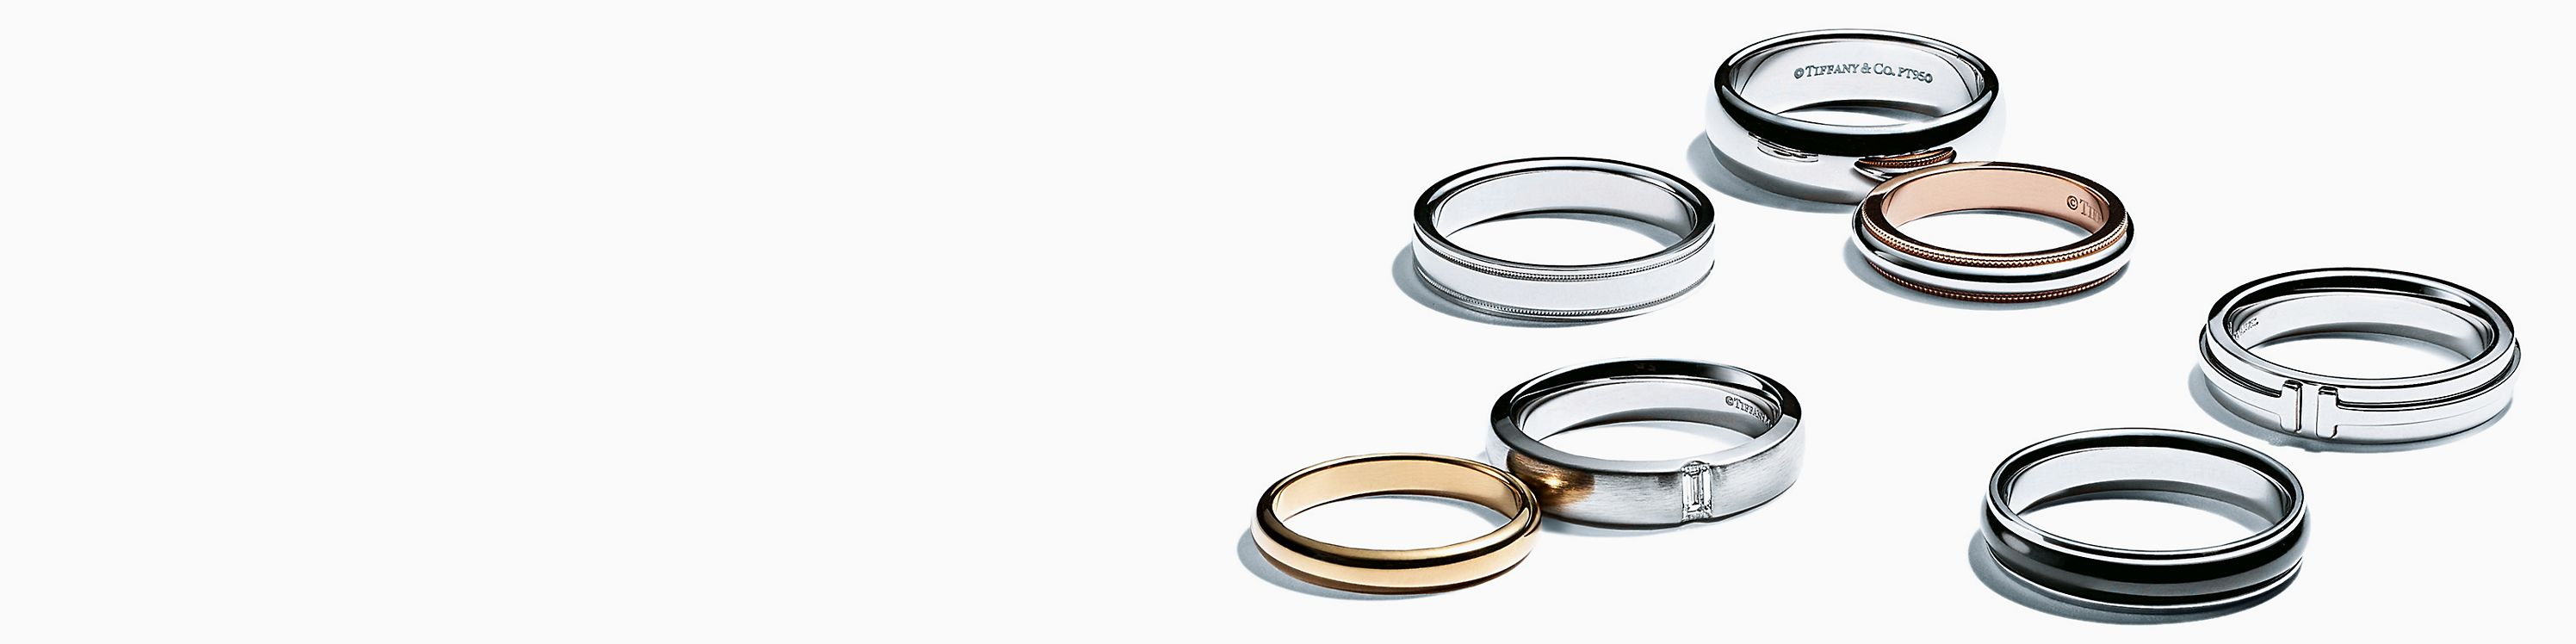 Shop Tiffany & Co. Men's Wedding Bands